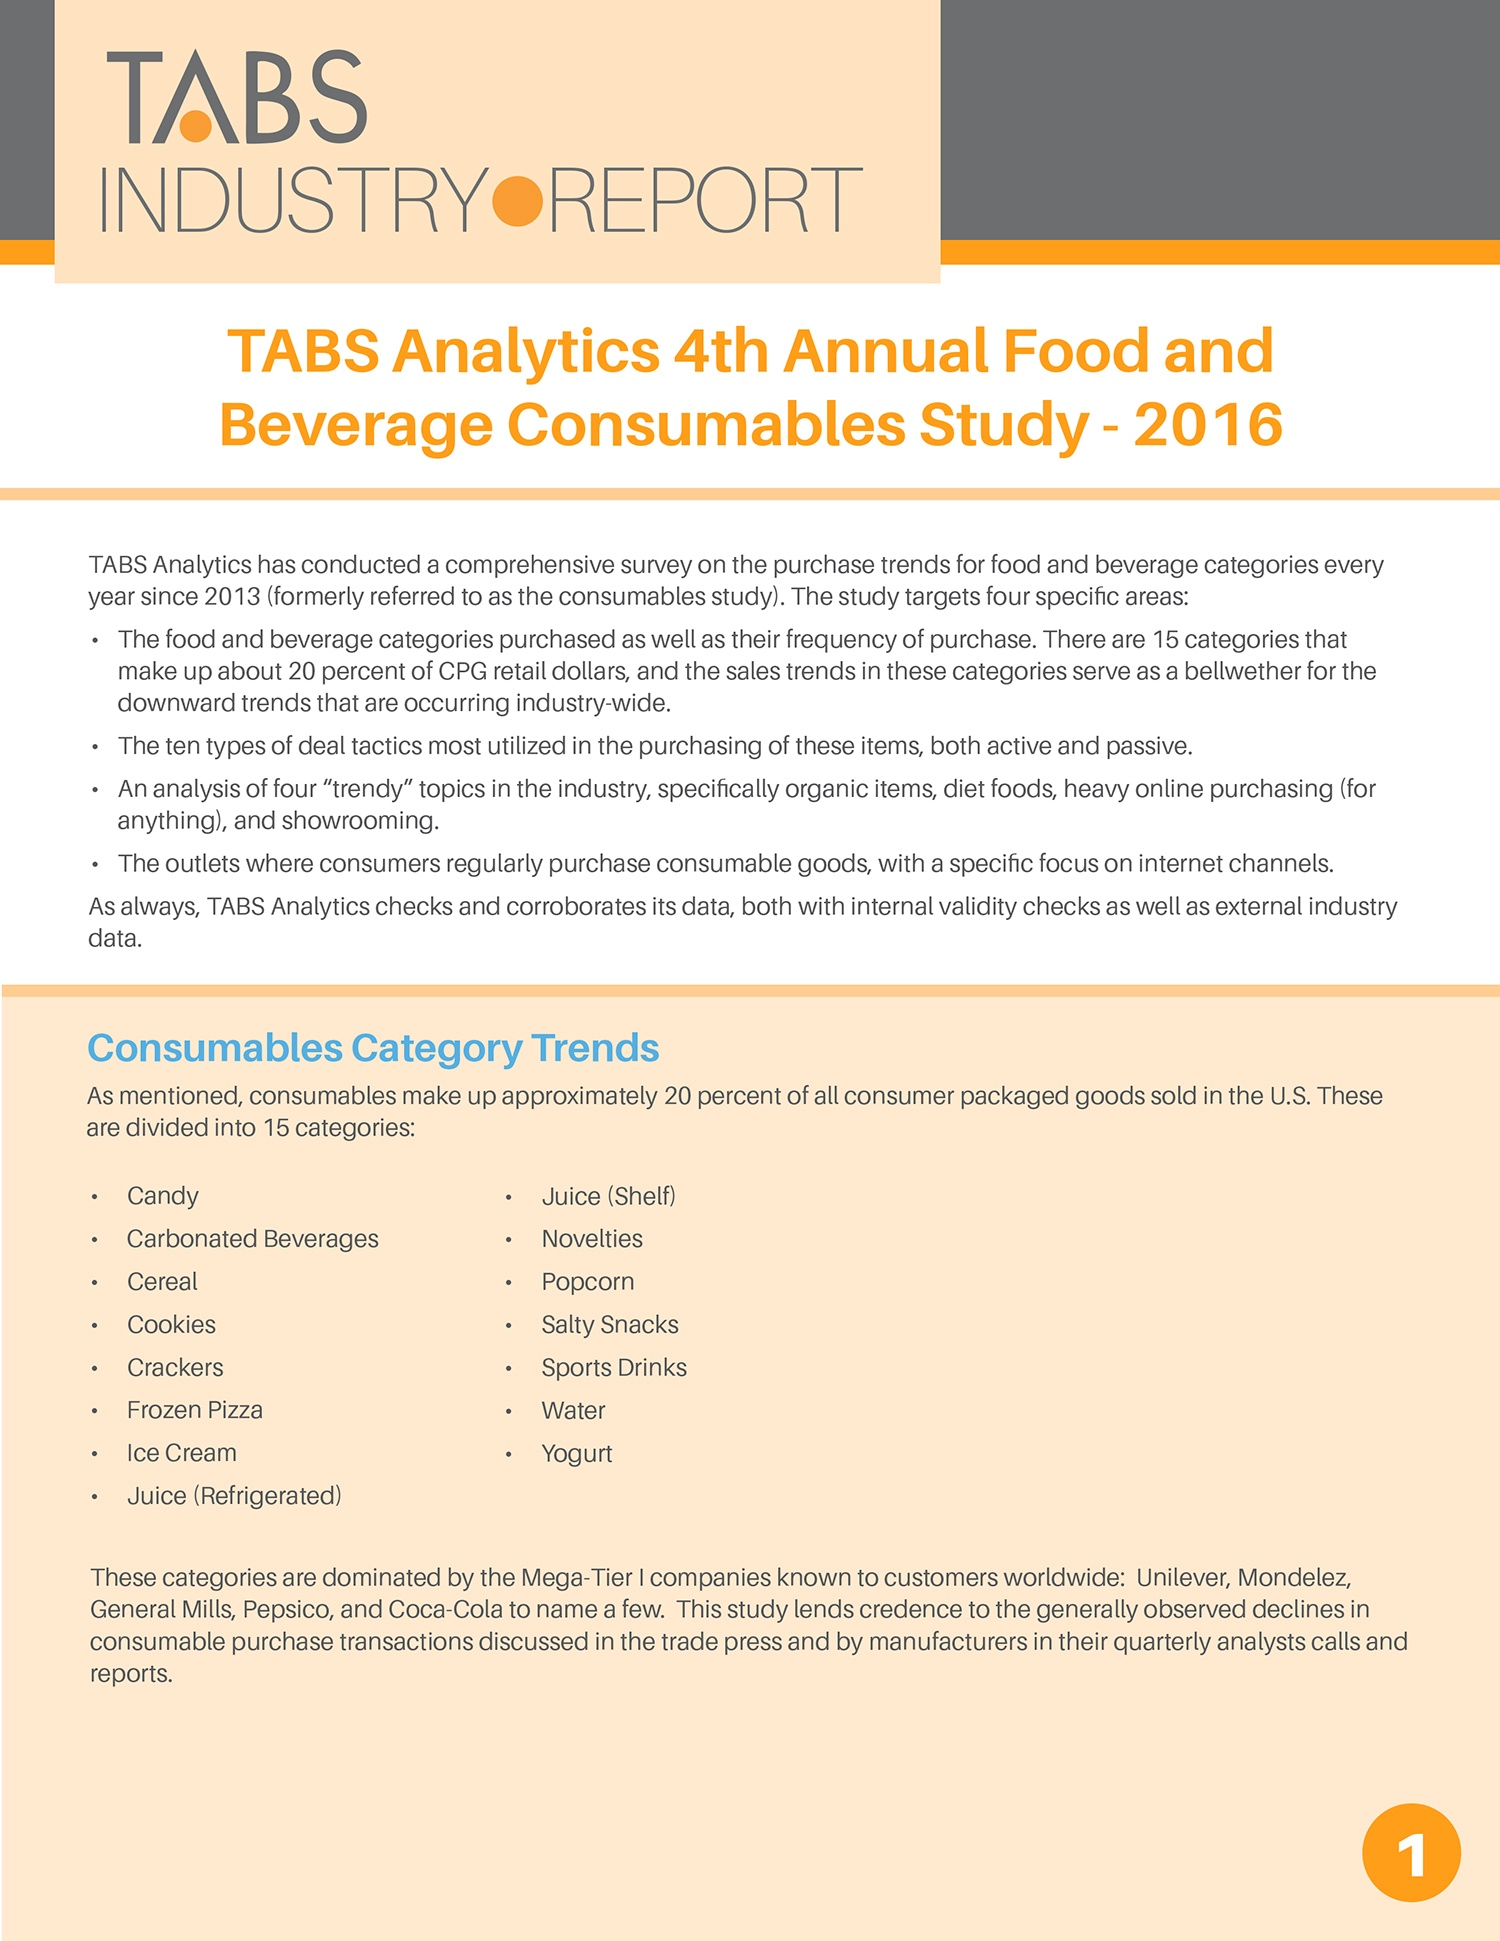 4th_Annual_Food_and_Beverage_Consumable_Study